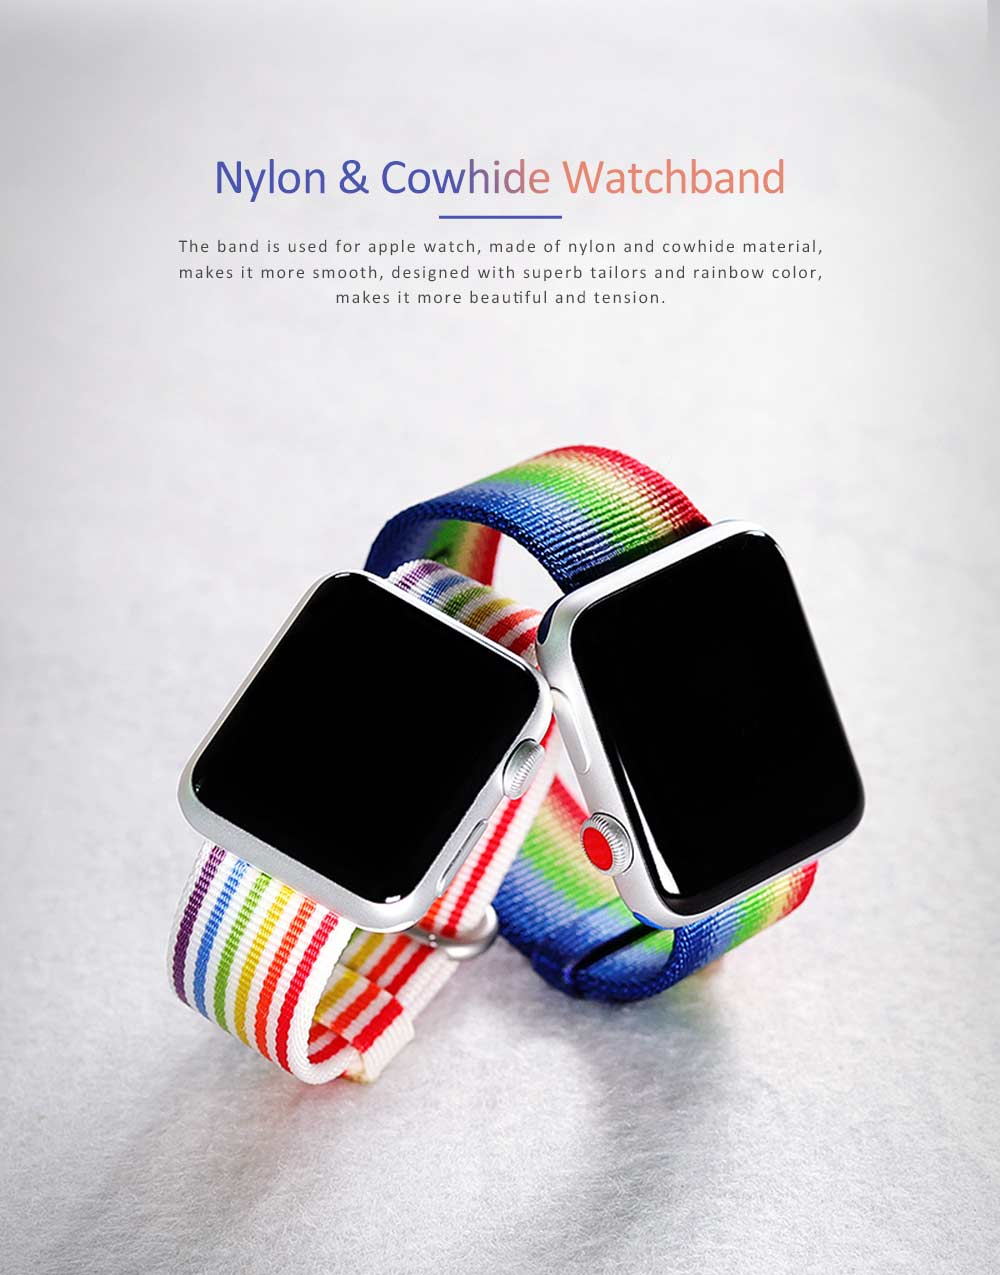 Watchband For Apple Watch, Nylon and Cowhide Band Matching for Apple Watch Casual Strap for Sports, Causal 0